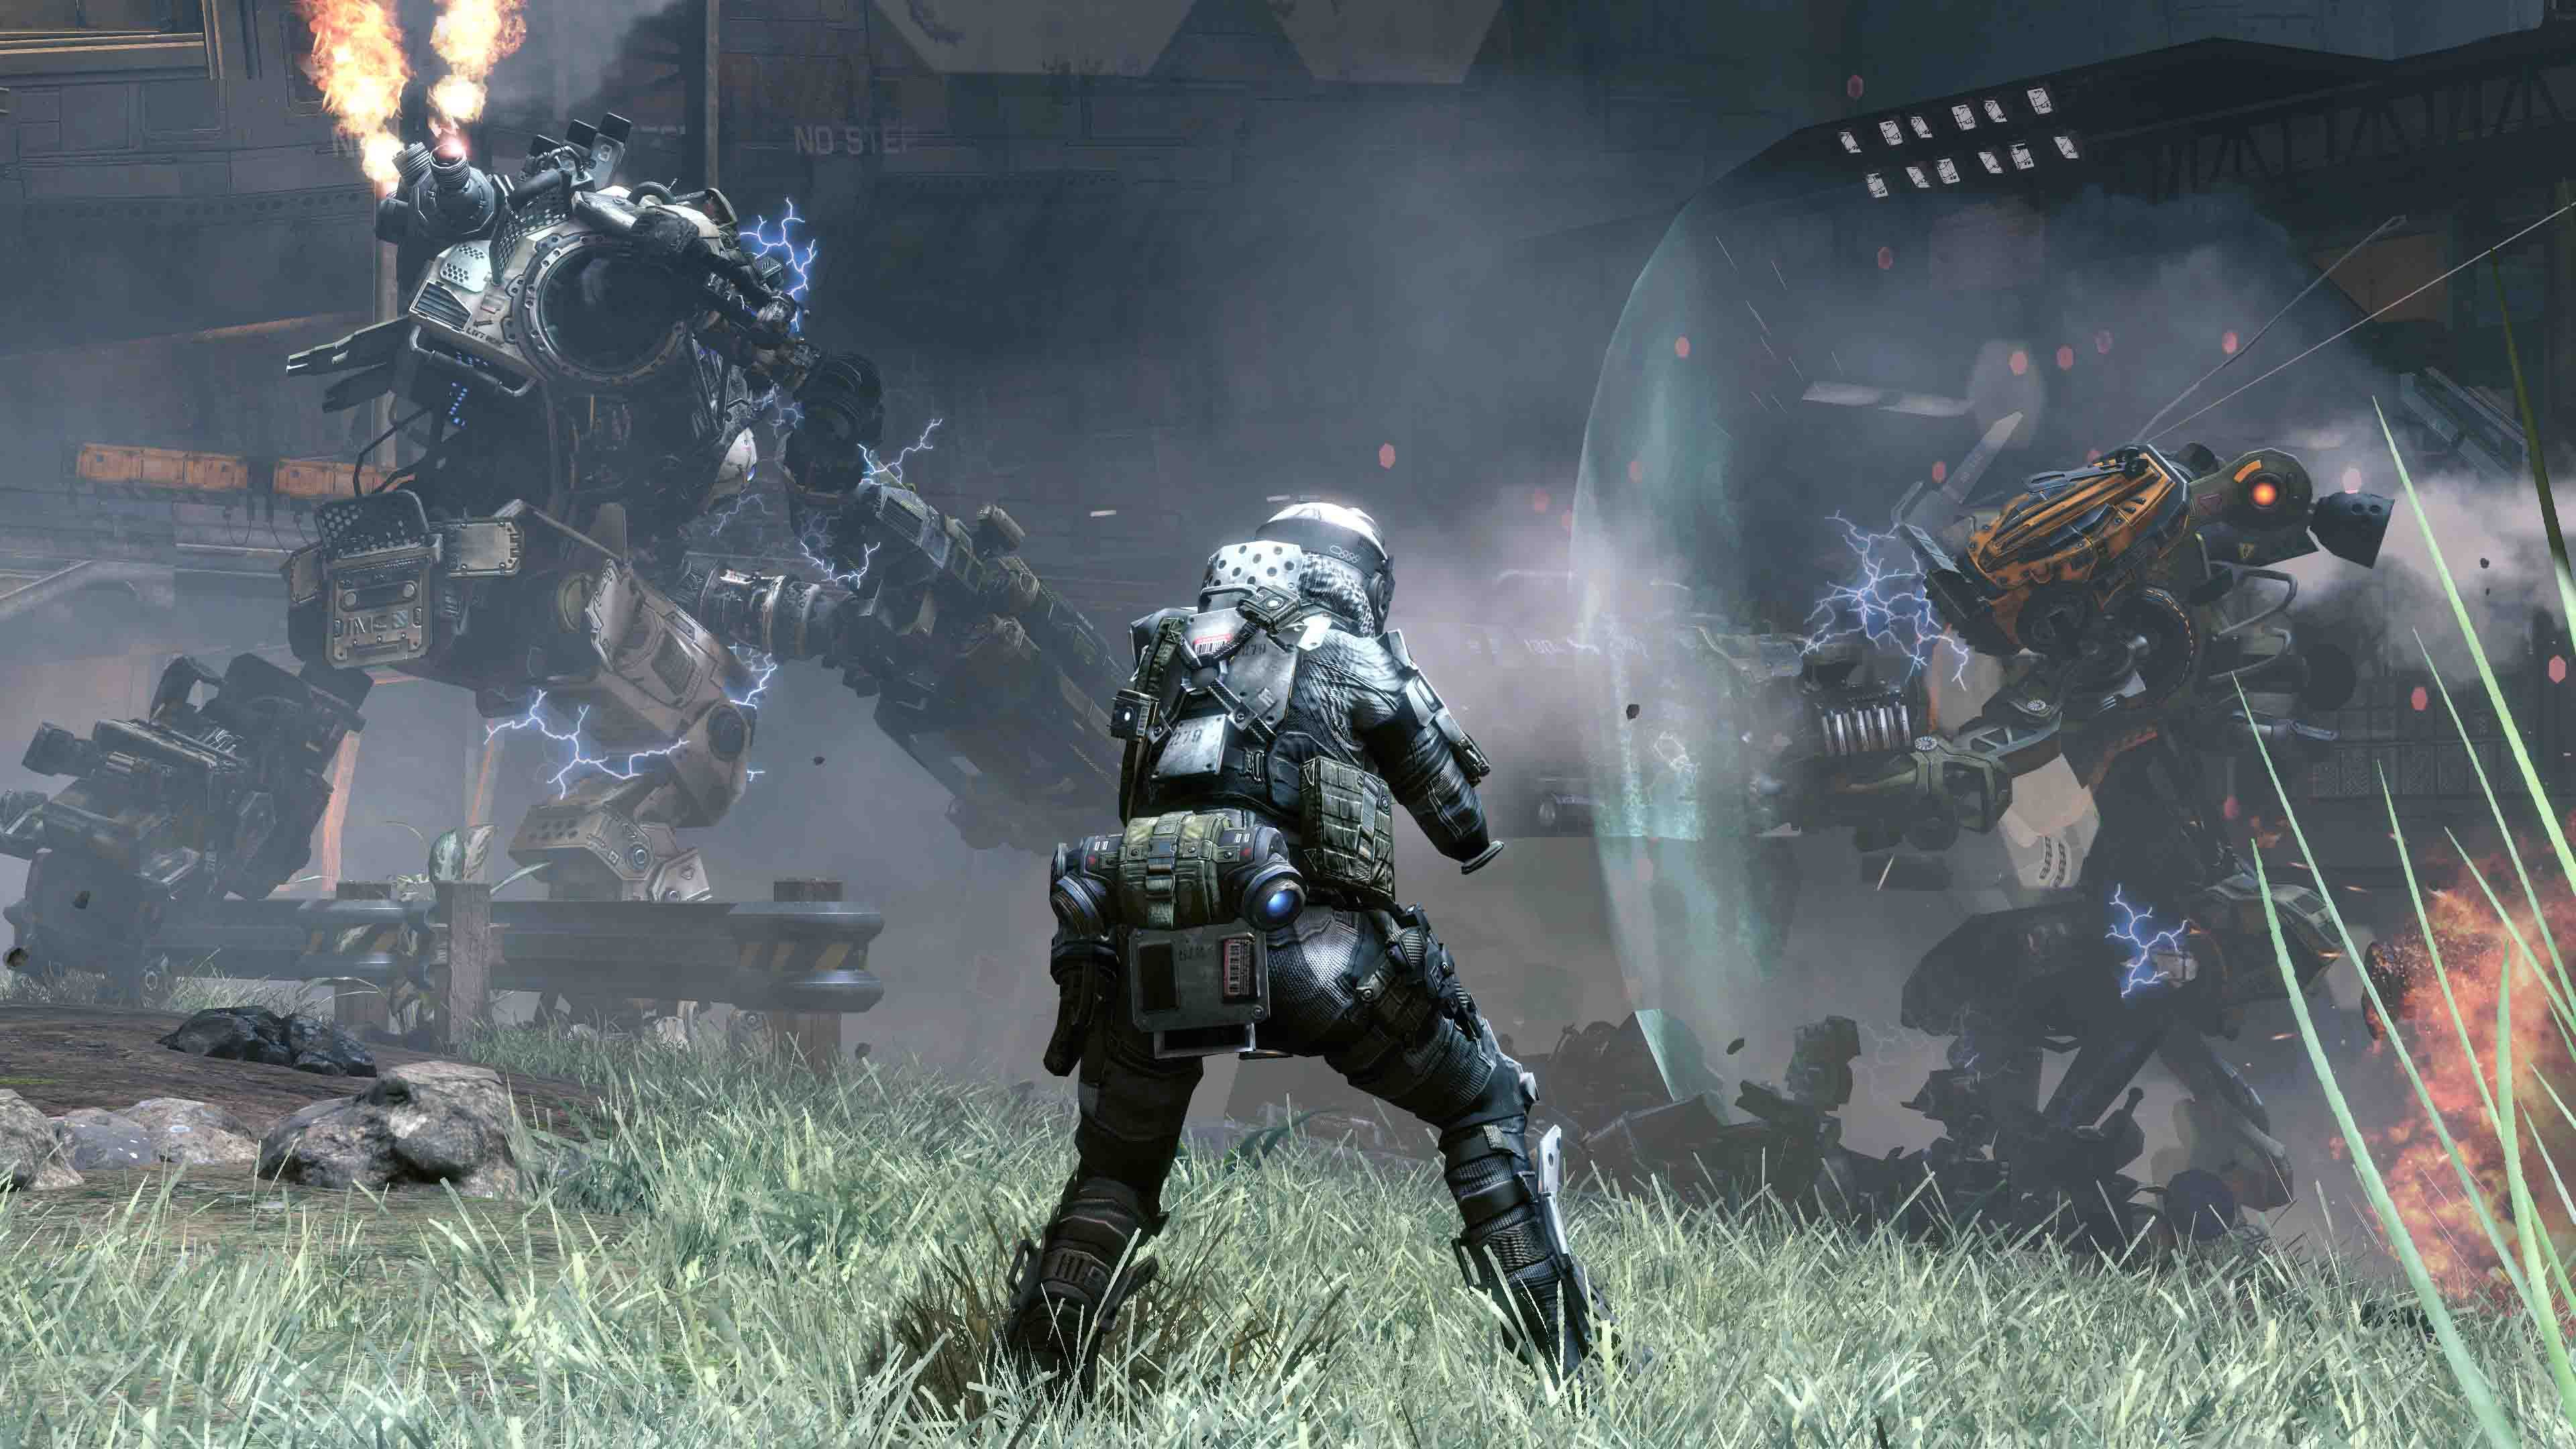 Titanfall will be available to pre-load